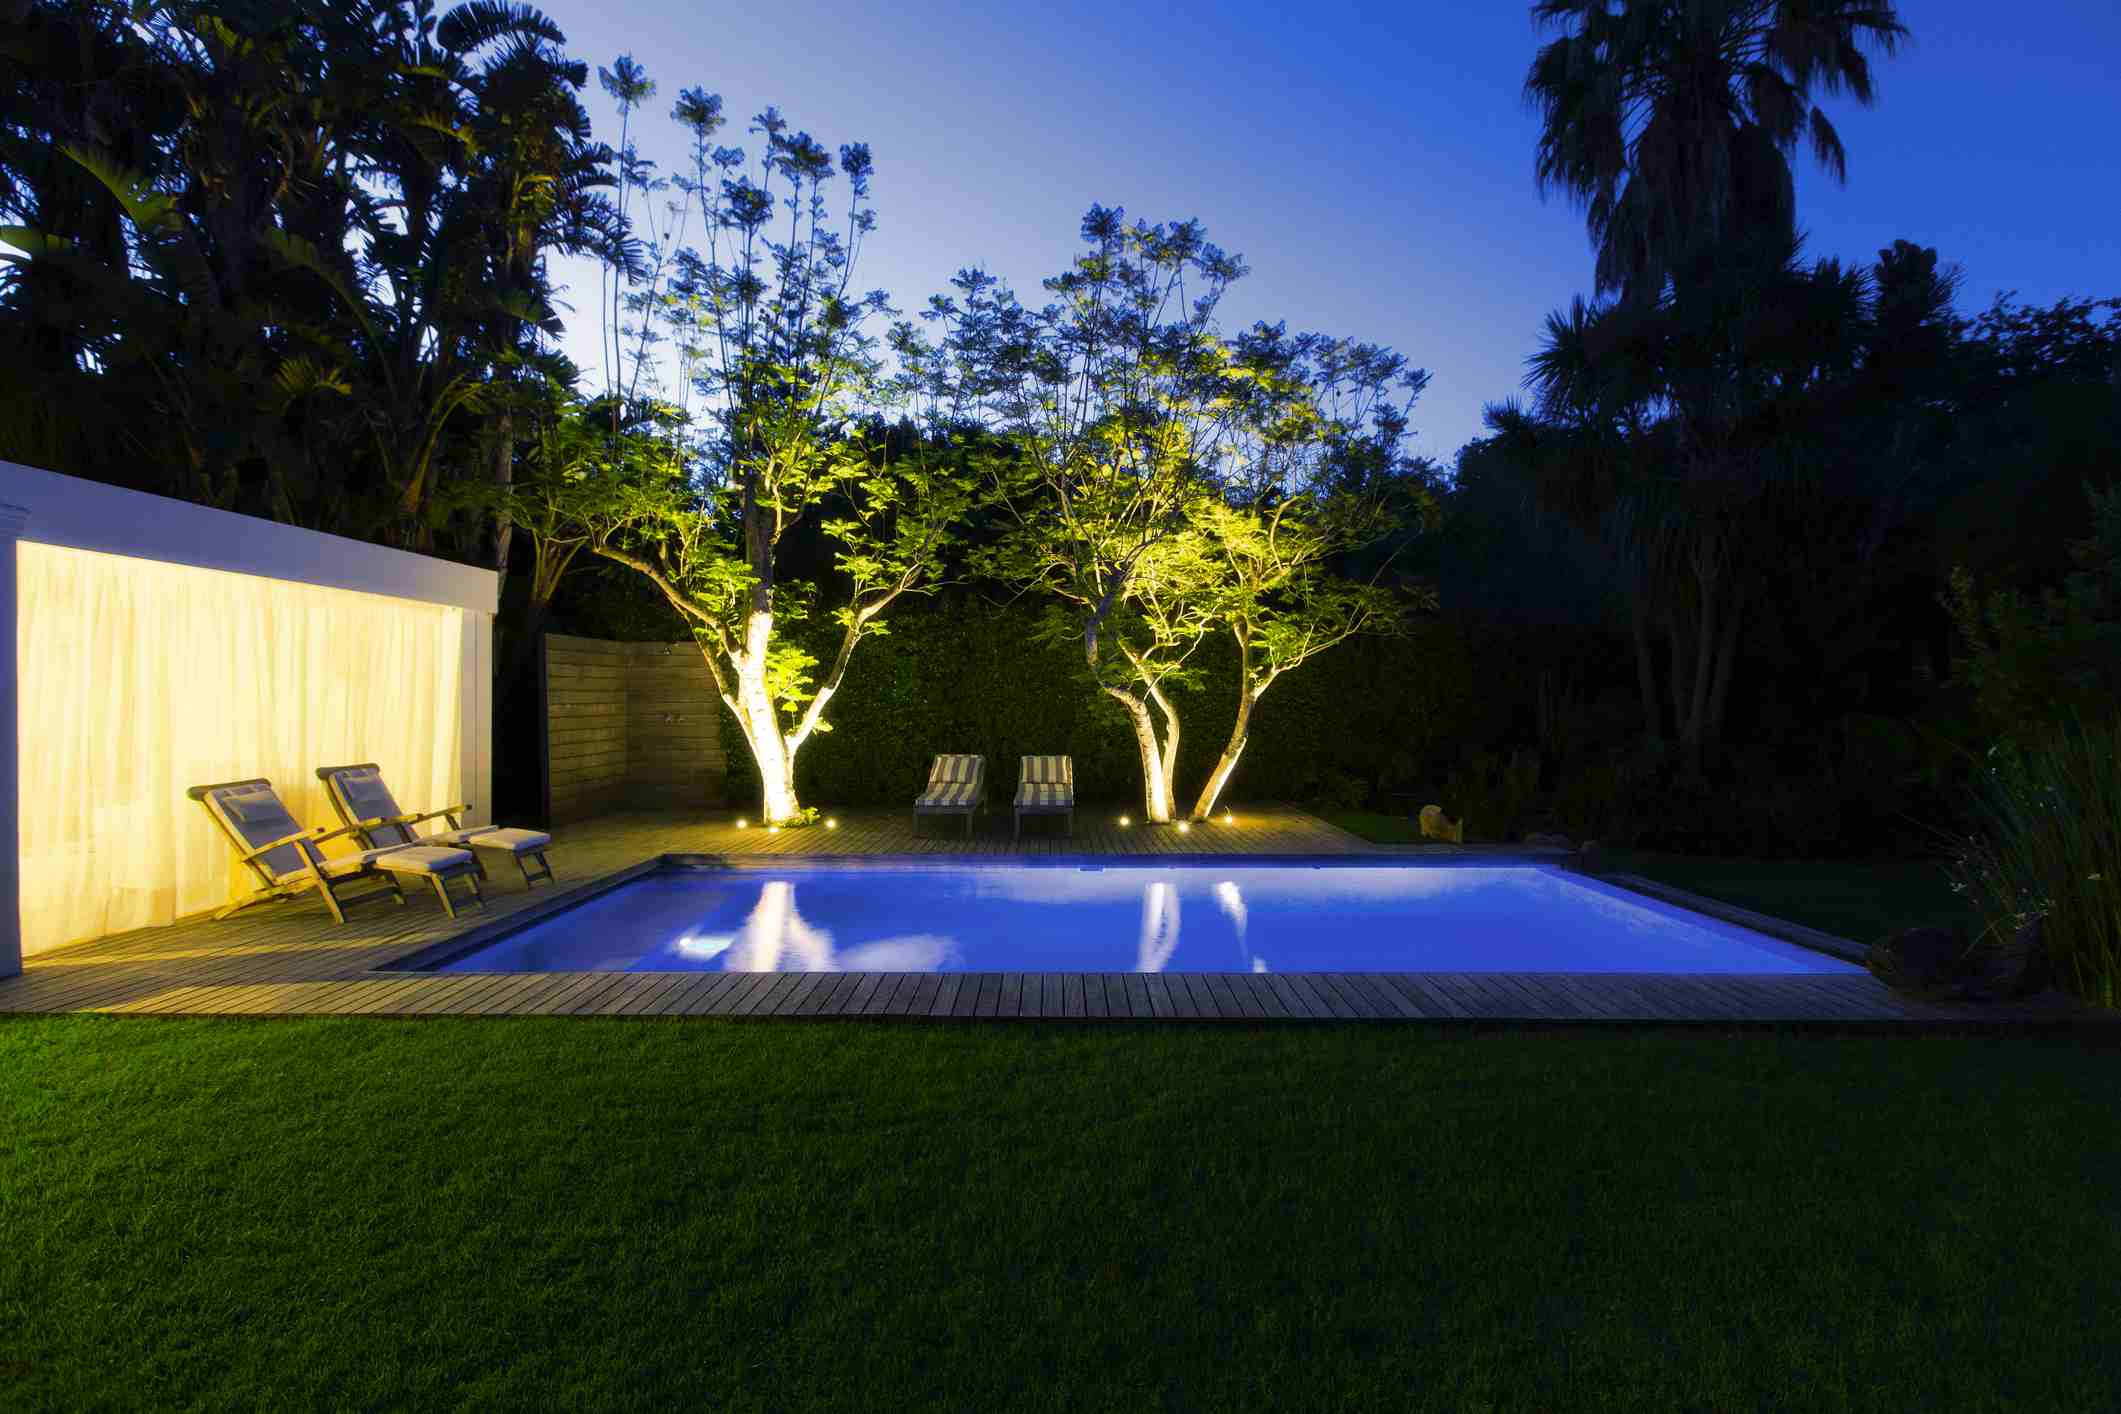 Illuminated swimming pool and trees in backyard at dusk